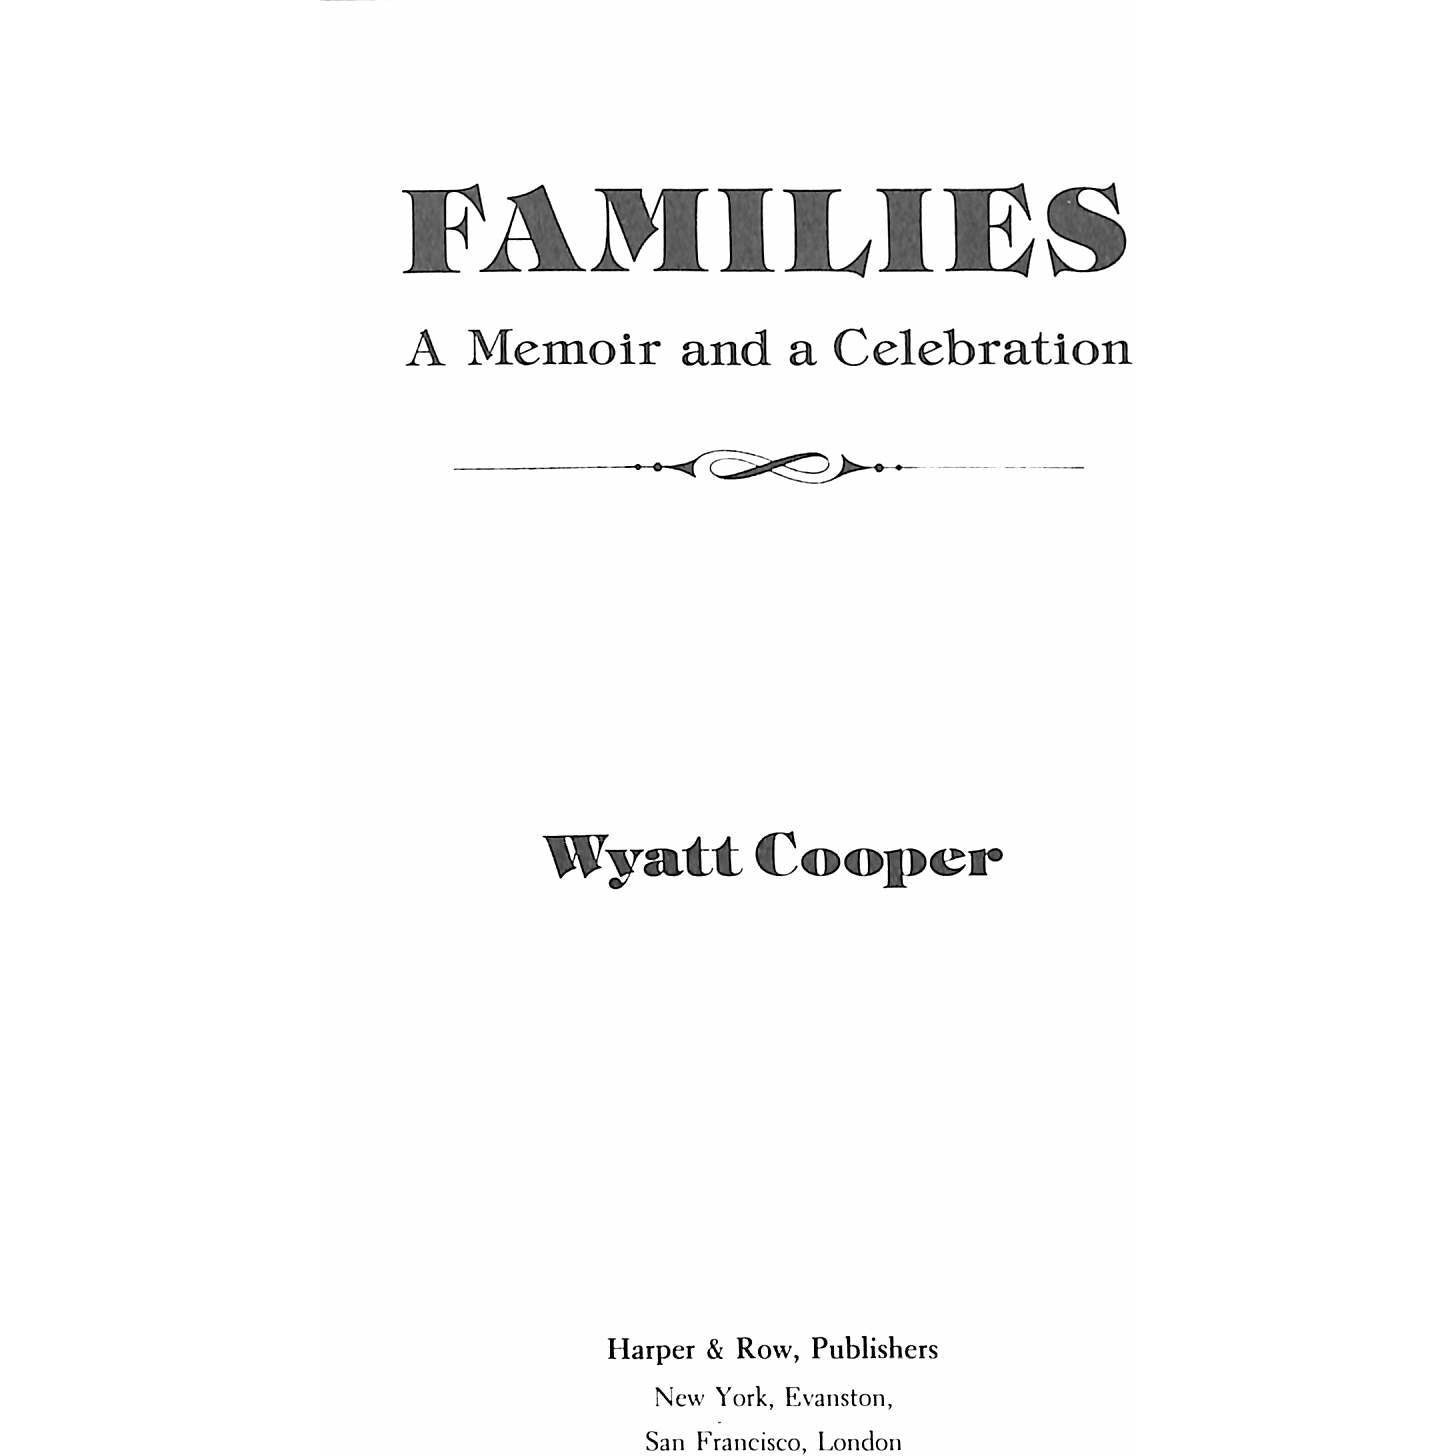 Families: A Memoir and a Celebration 1975 by Wyatt Cooper